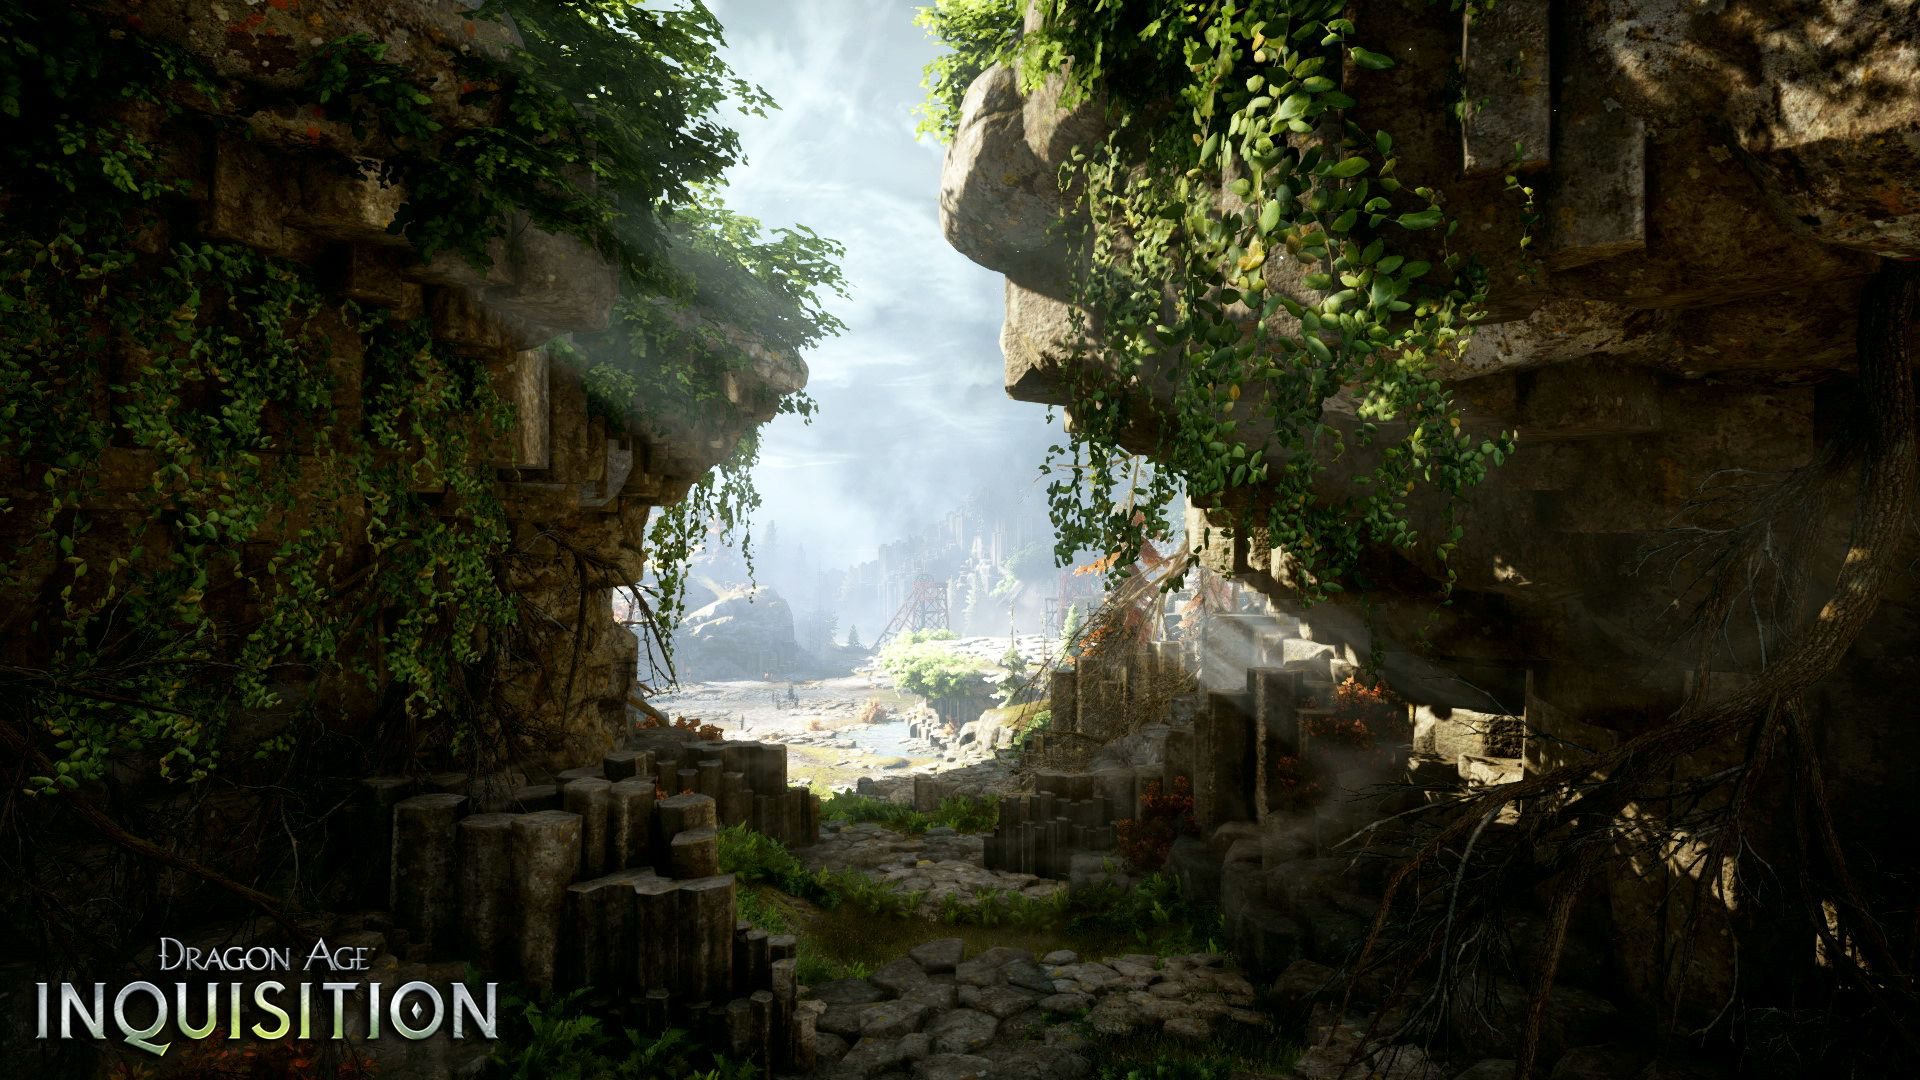 Dragon Age Inquisition Hd Wallpaper Background Image 1920x1080